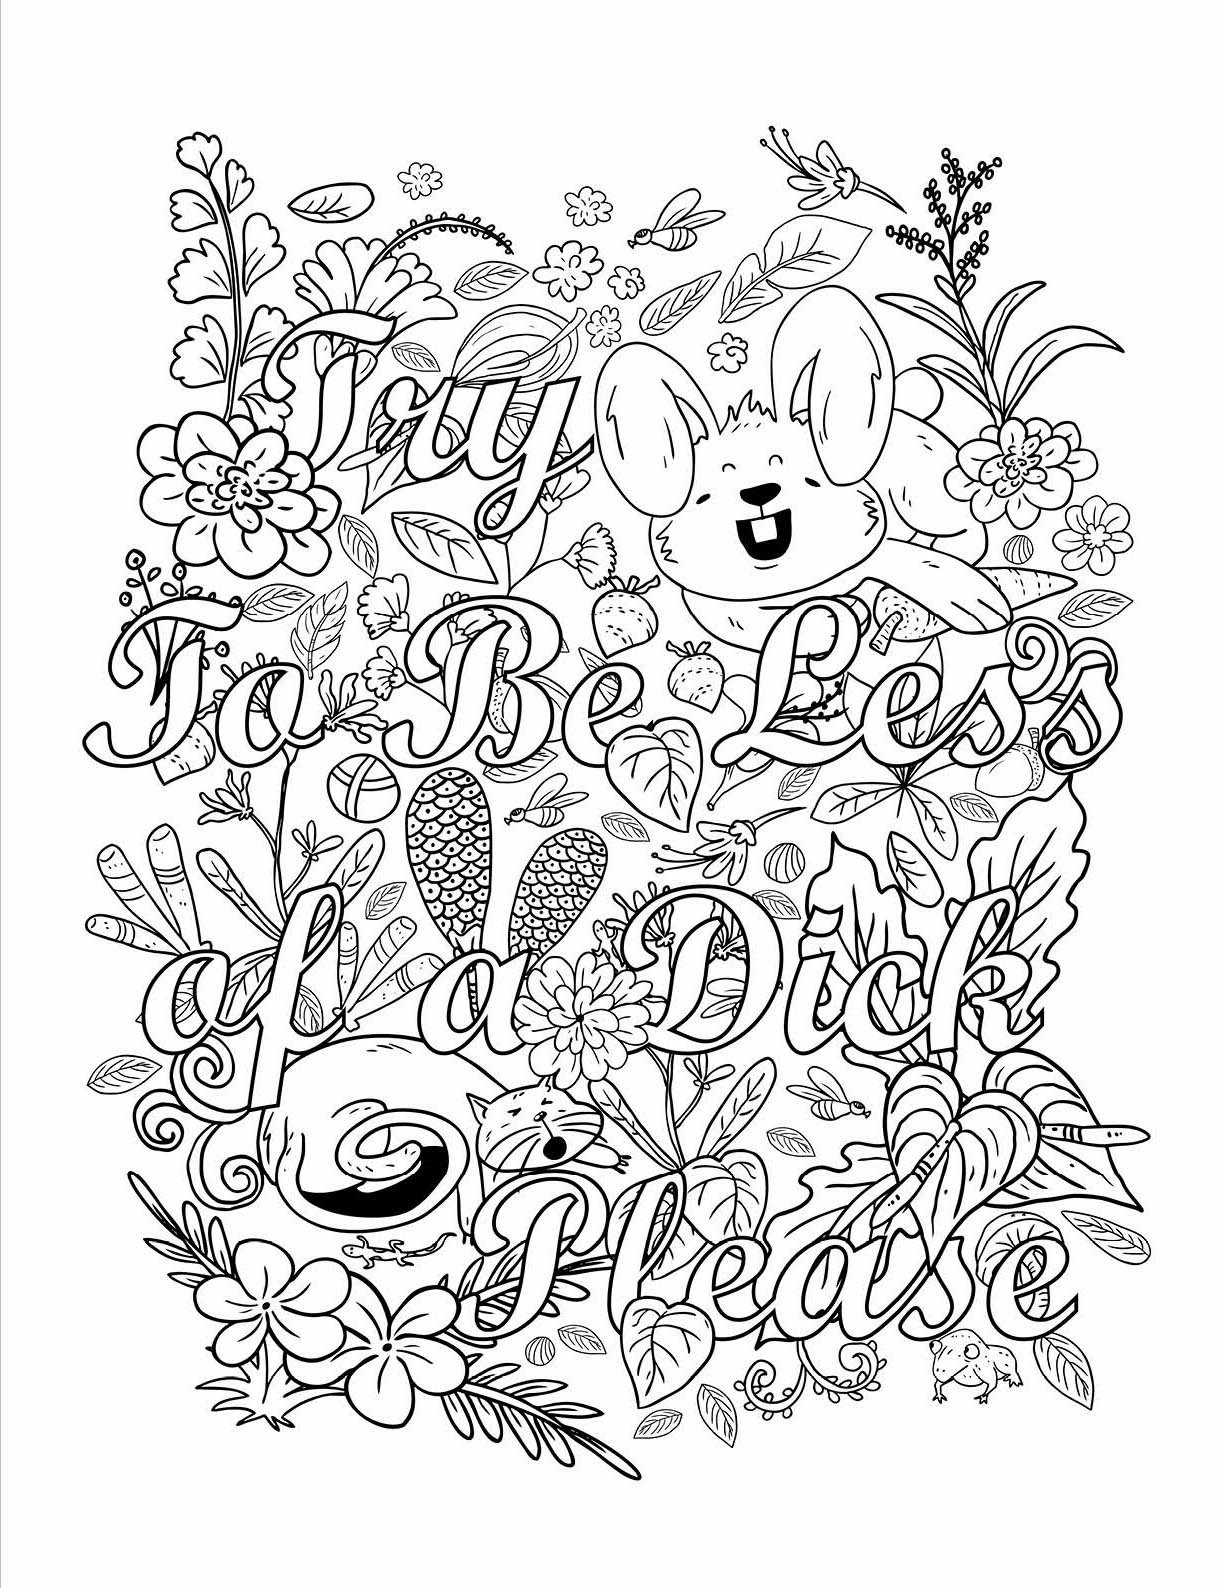 Memos To Shitty People A Delightful Vulgar Adult Coloring Book